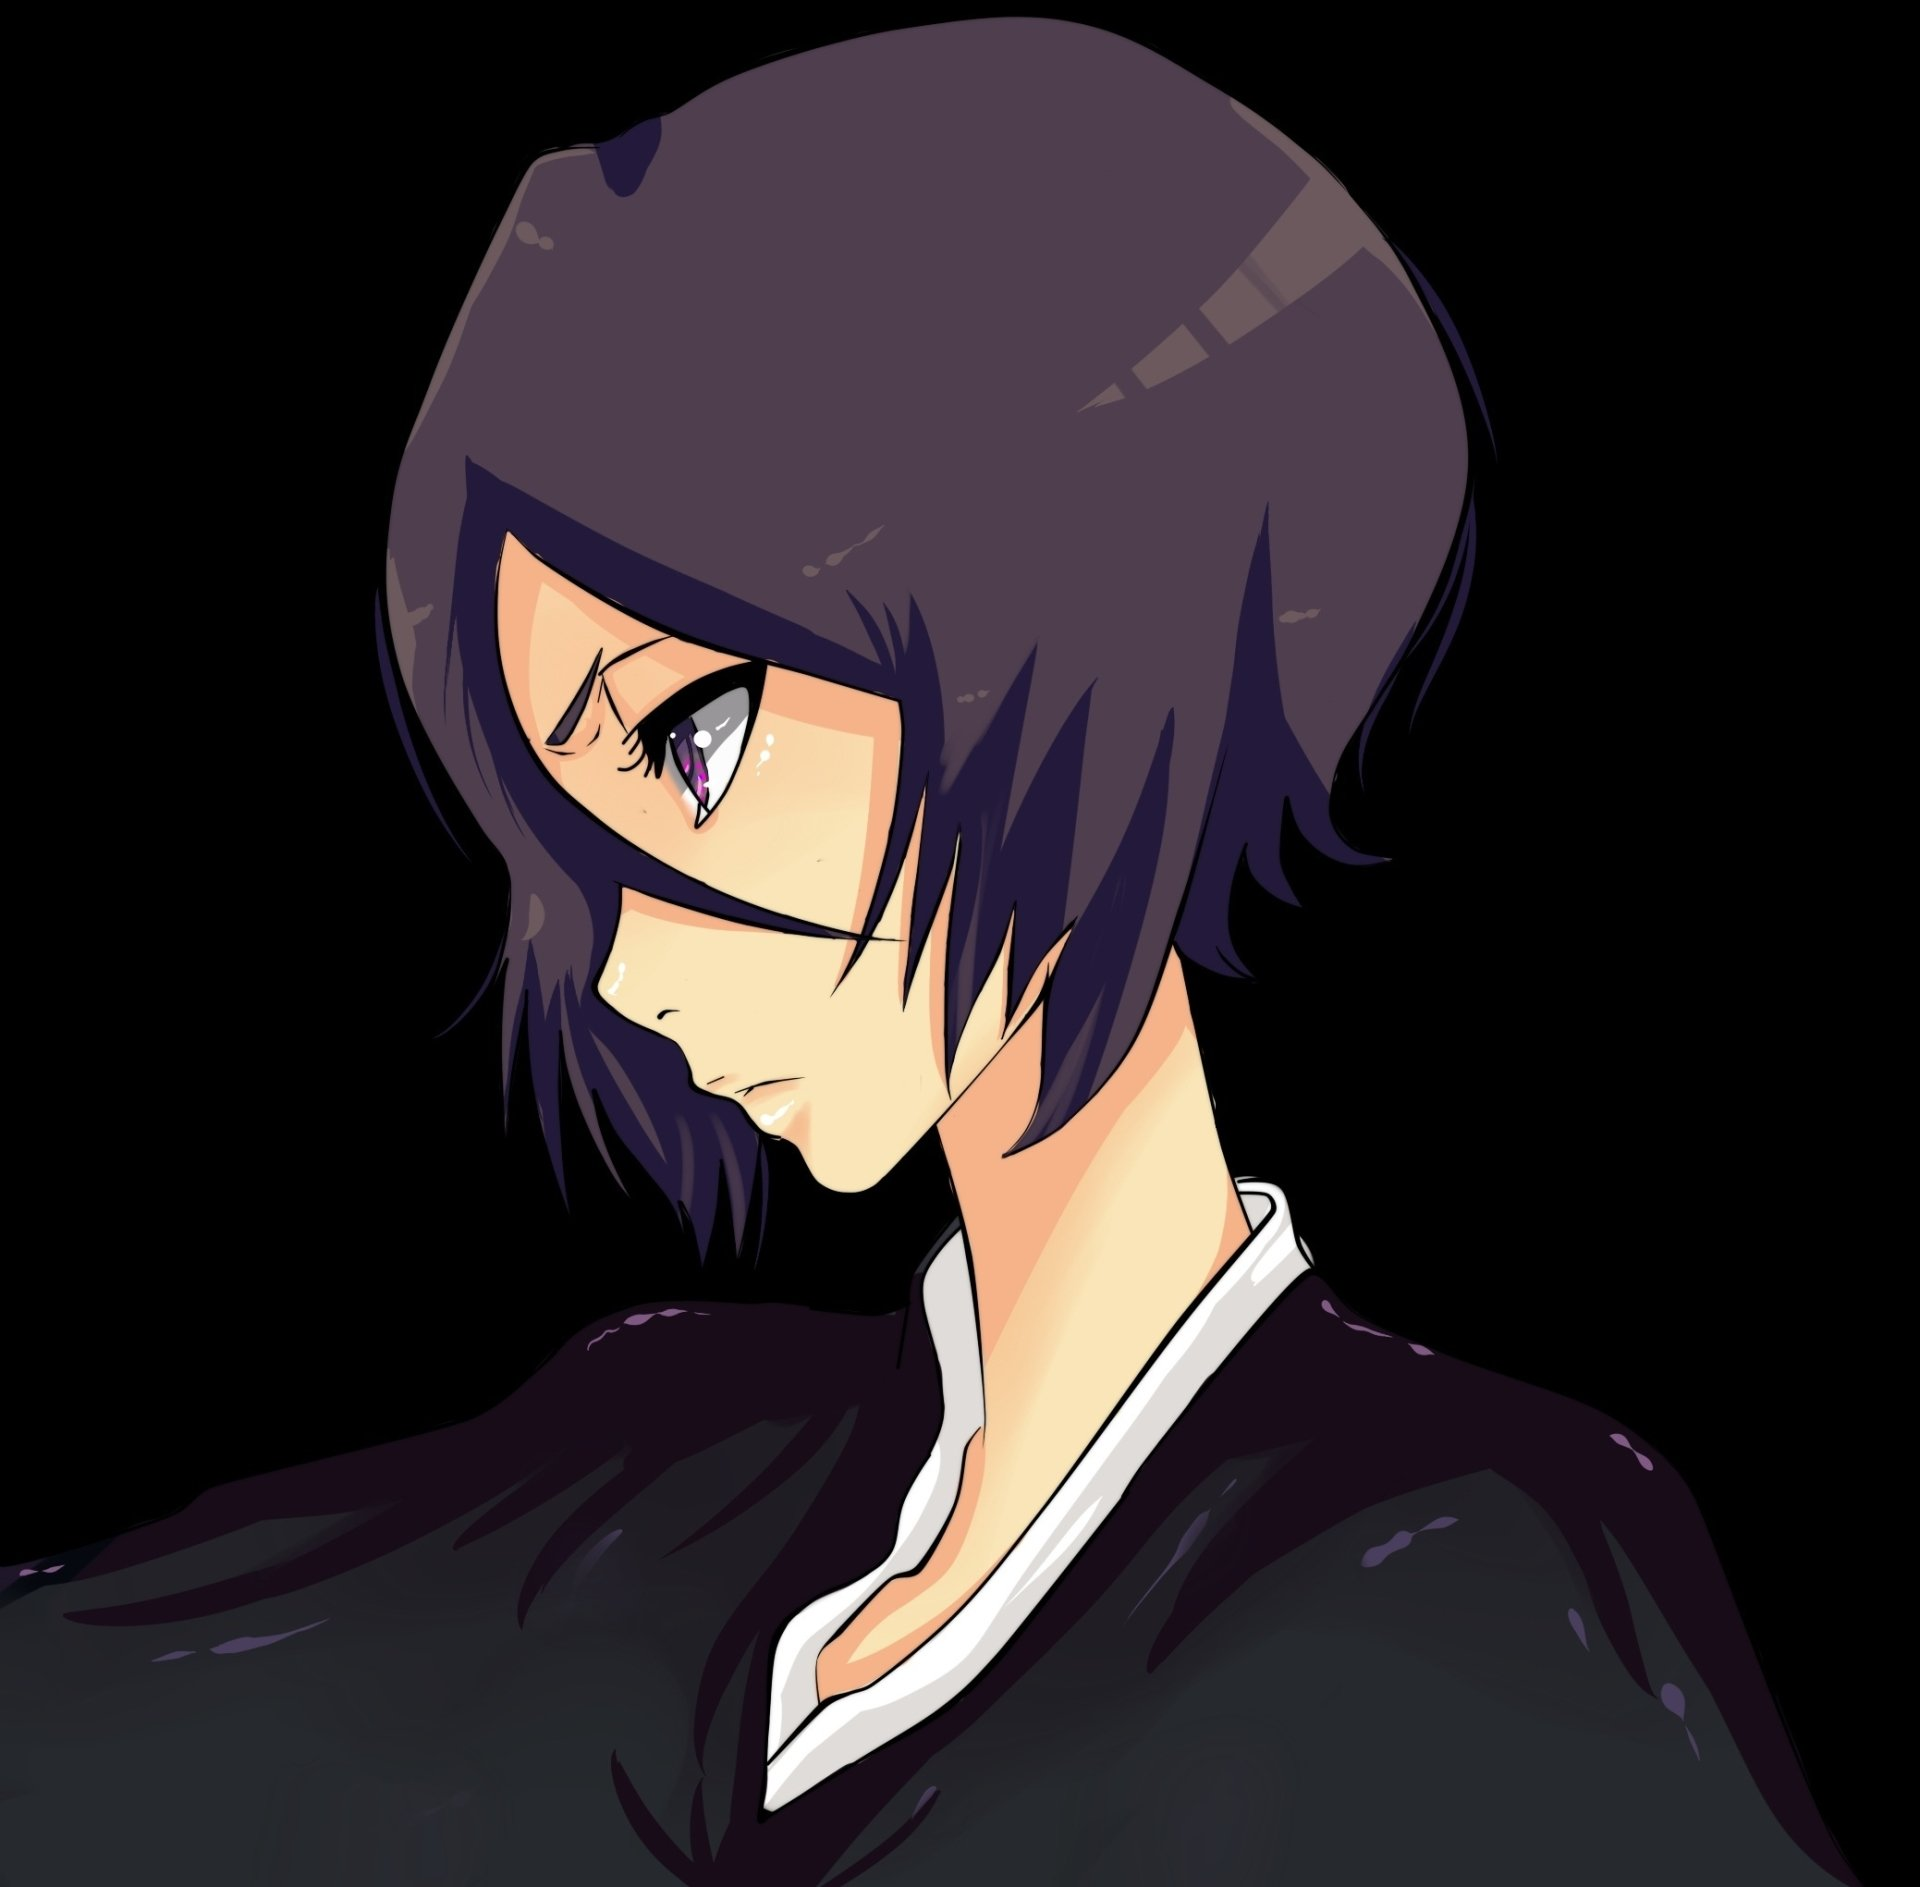 Anime - Bleach  Rukia Kuchiki Wallpaper